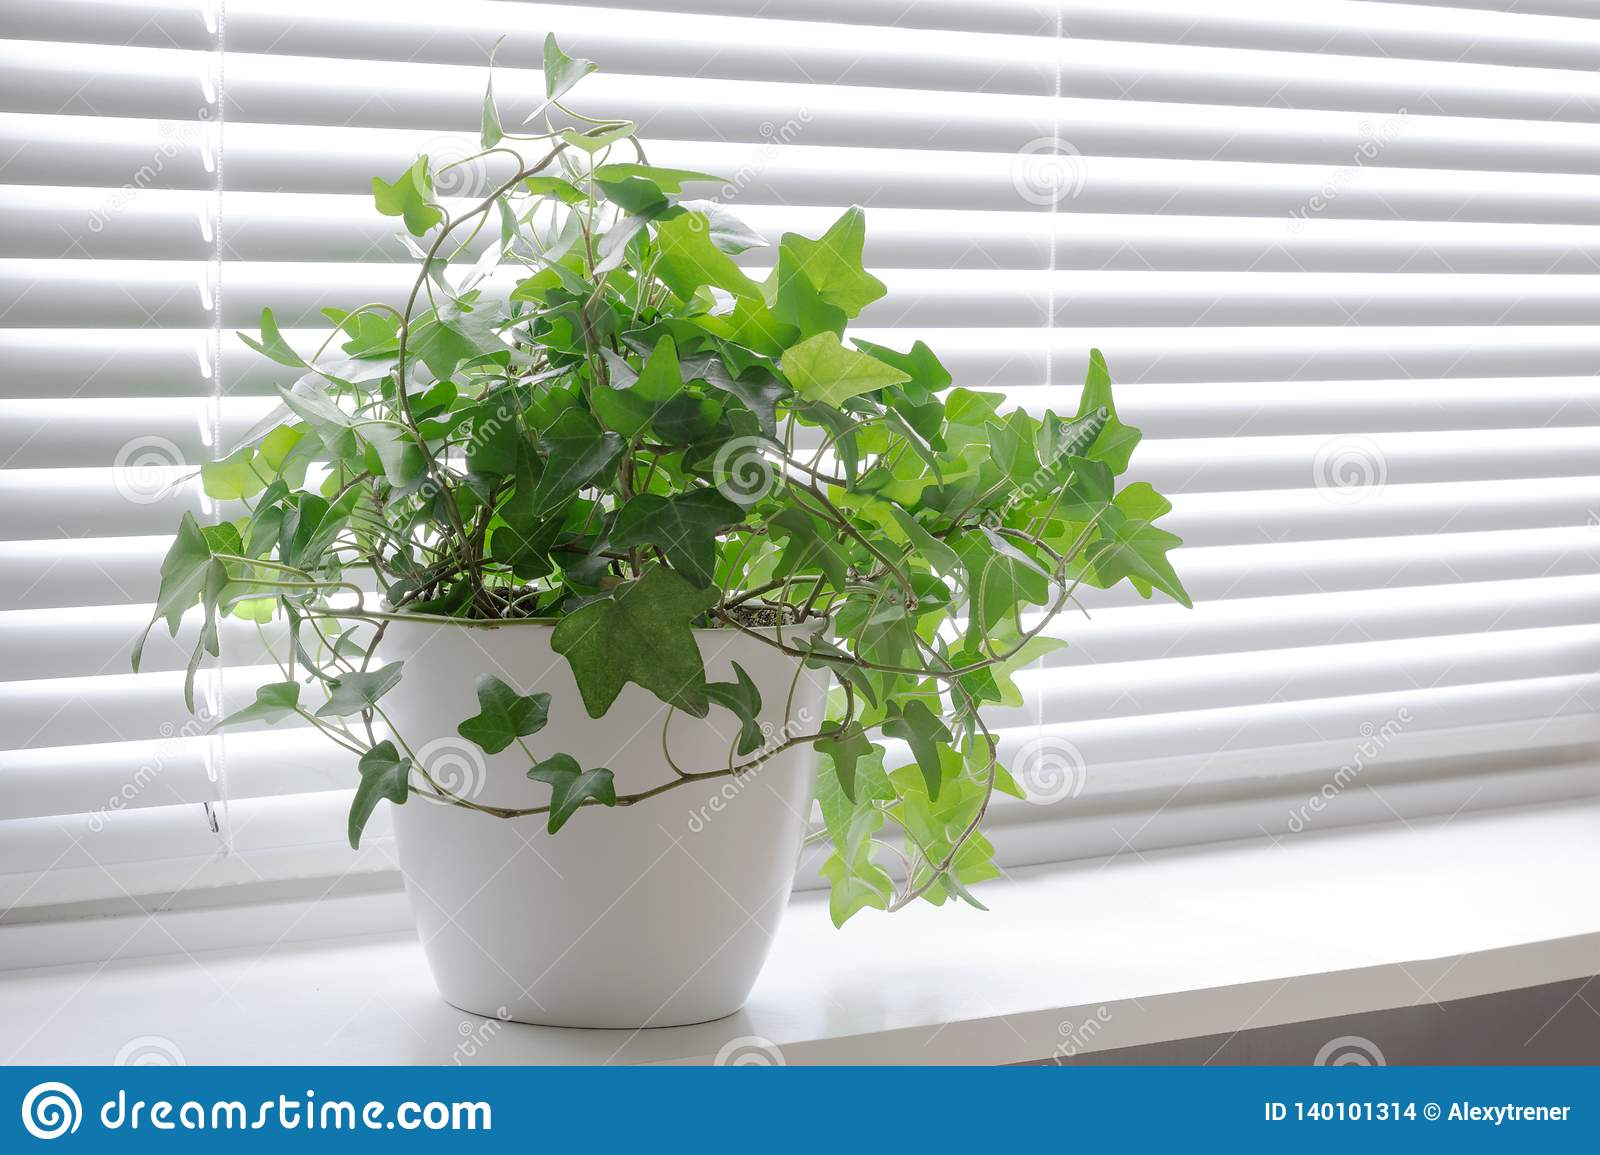 Flower Hedera Ivy In White A Pot On The Light Windowsill Indoor Flower For Office Concept Stock Photo Image Of Nature Decoration 140101314